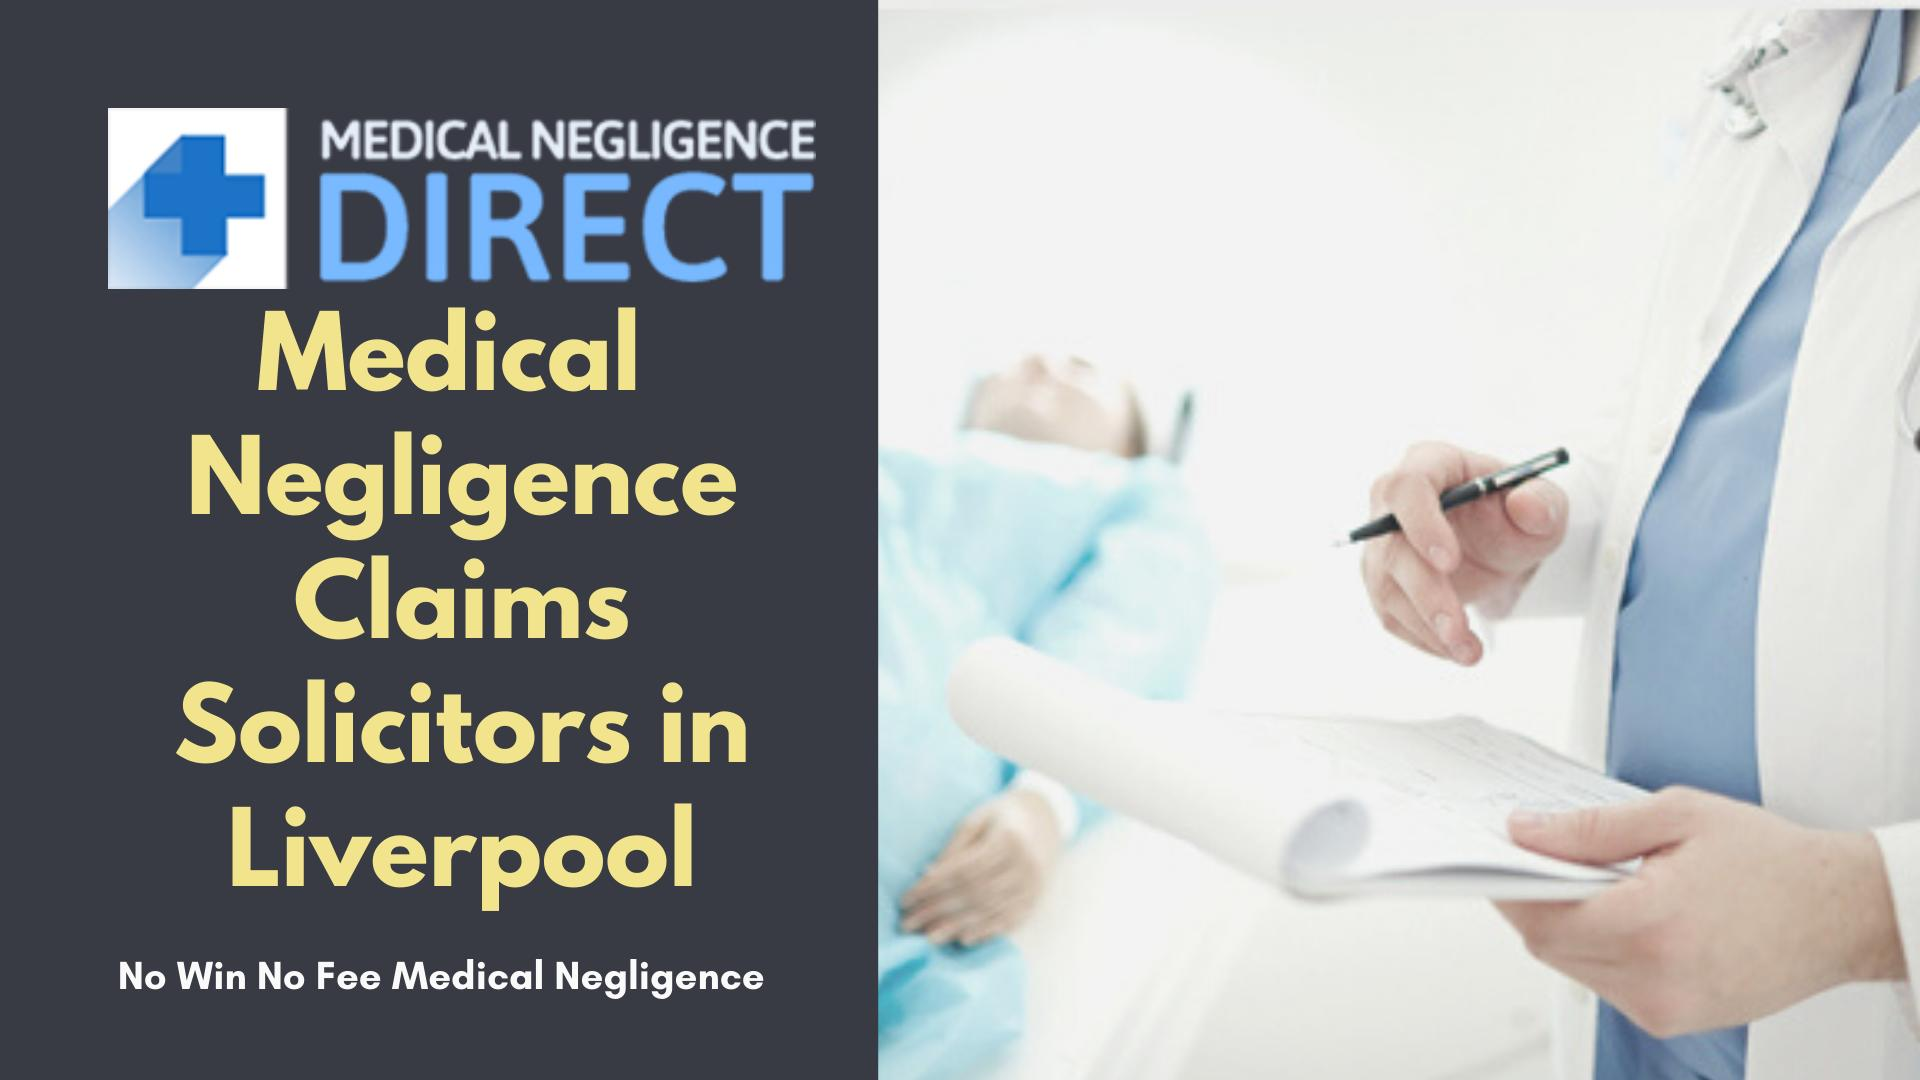 Image - Would you want to claim compensation for #MedicalNegligence? Speak to our #MedicalNegligenceSolicitors Expert...